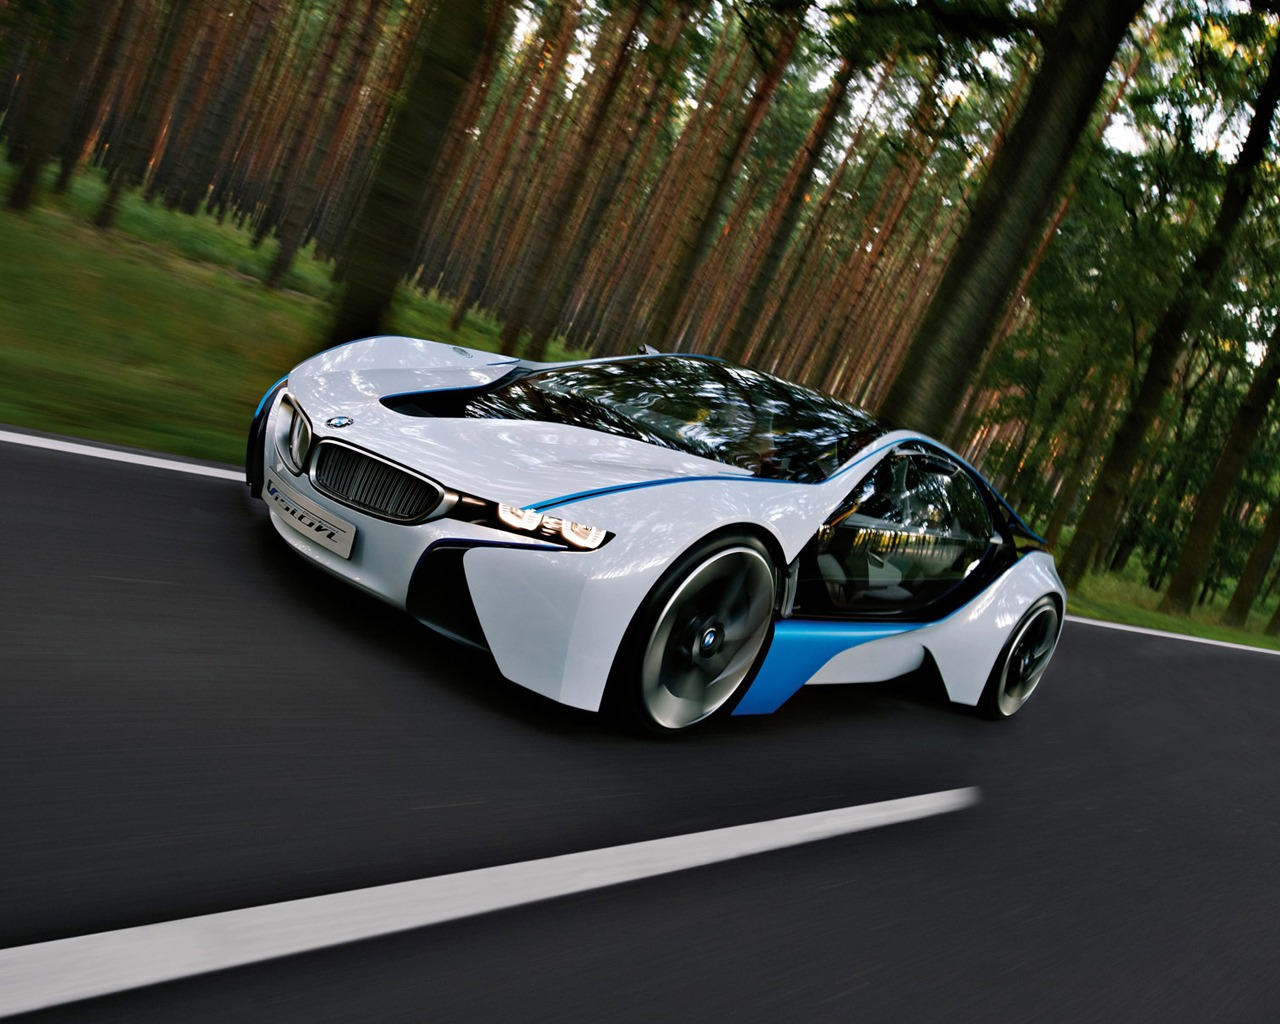 BMW Vision Wallpaper Cars Wallpapers